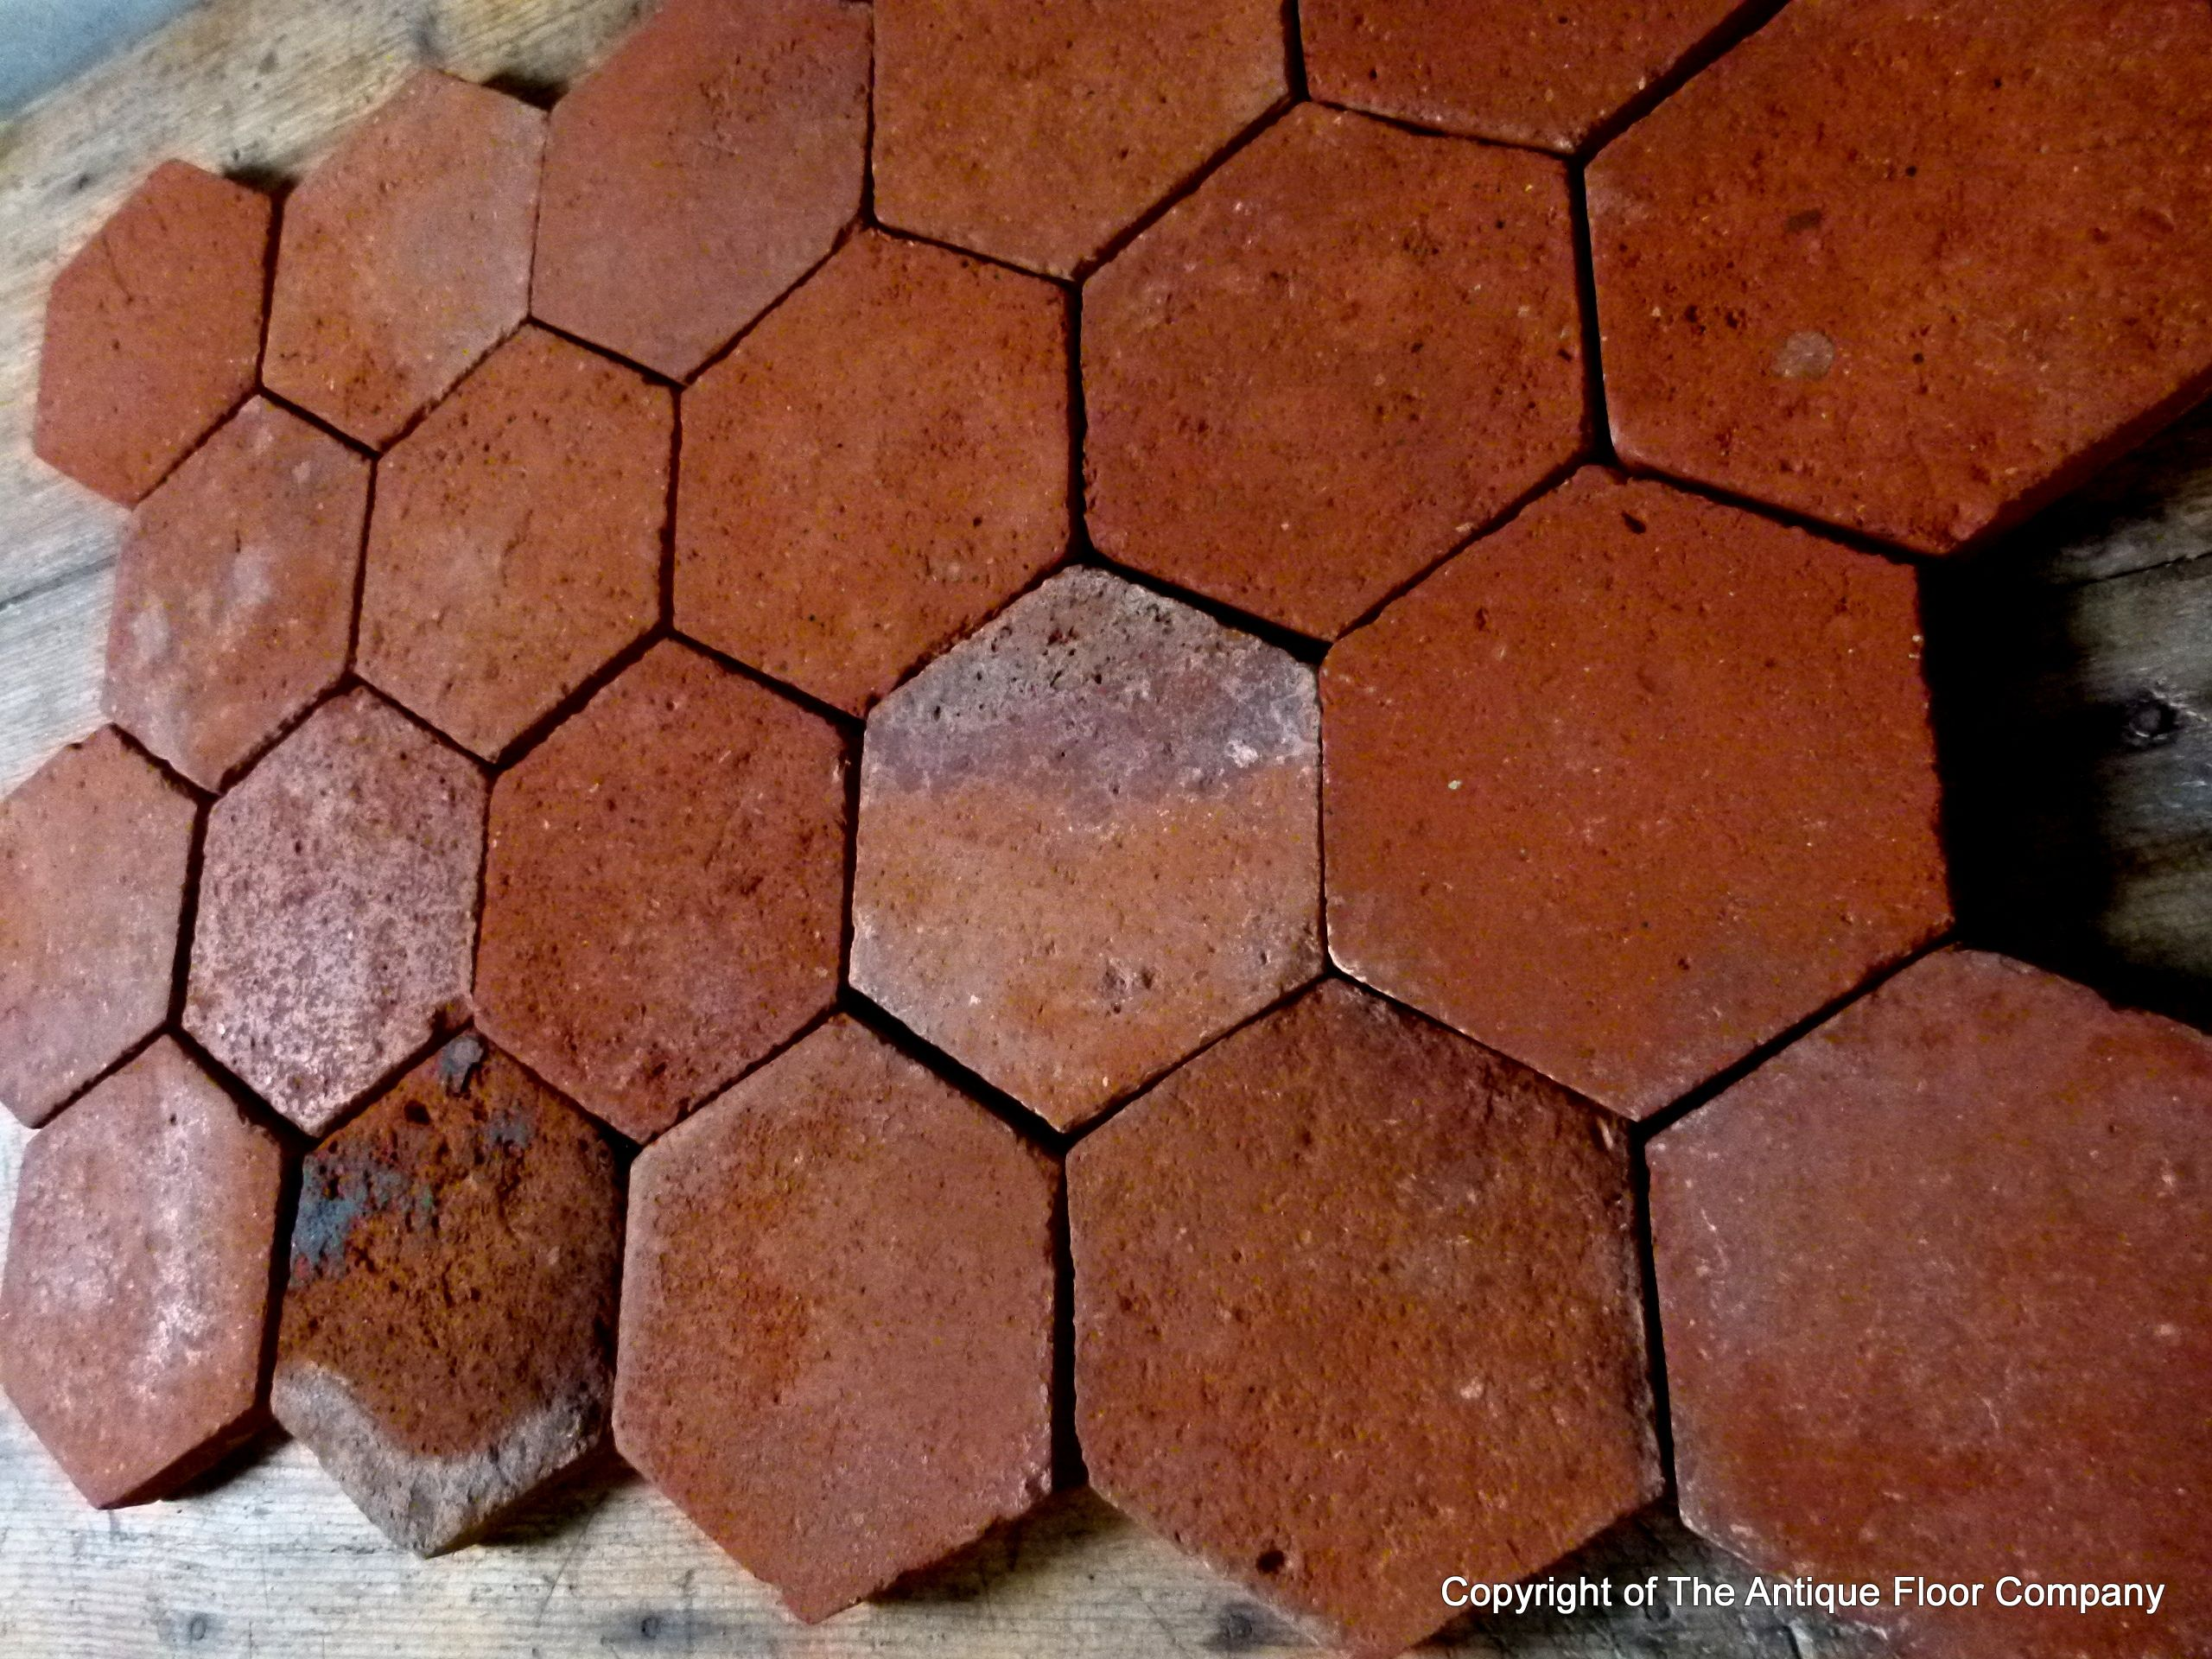 20m2 215 sq ft 19th century french terracotta hexagon tiles the 20m2 215 sq ft 19th century french terracotta hexagon tiles the antique floor company dailygadgetfo Choice Image